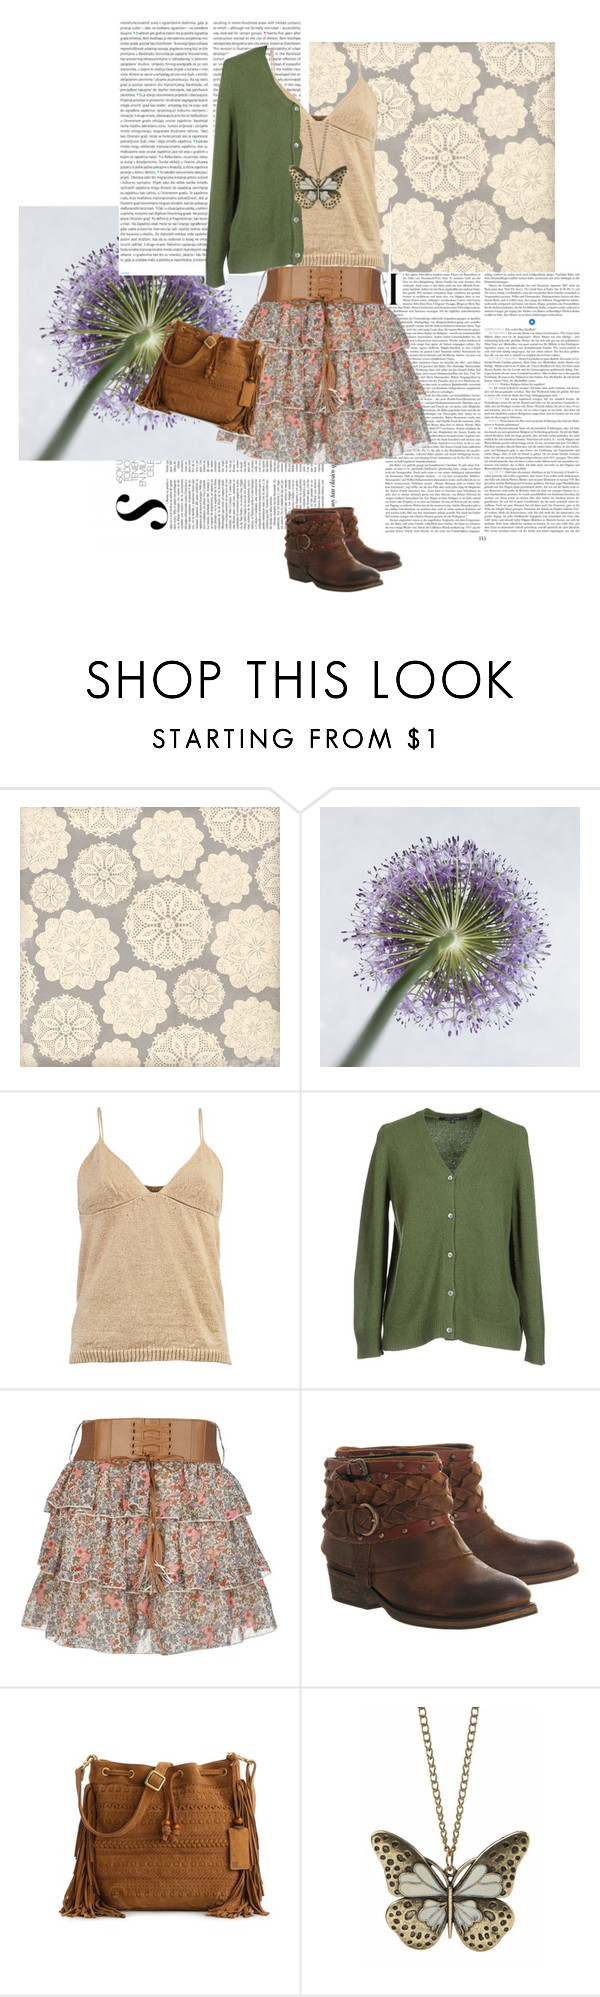 """""""Butterflyyyy"""" by zinnalee ❤ liked on Polyvore featuring Oris, Dries Van Noten, Sofie D'hoore and Office"""